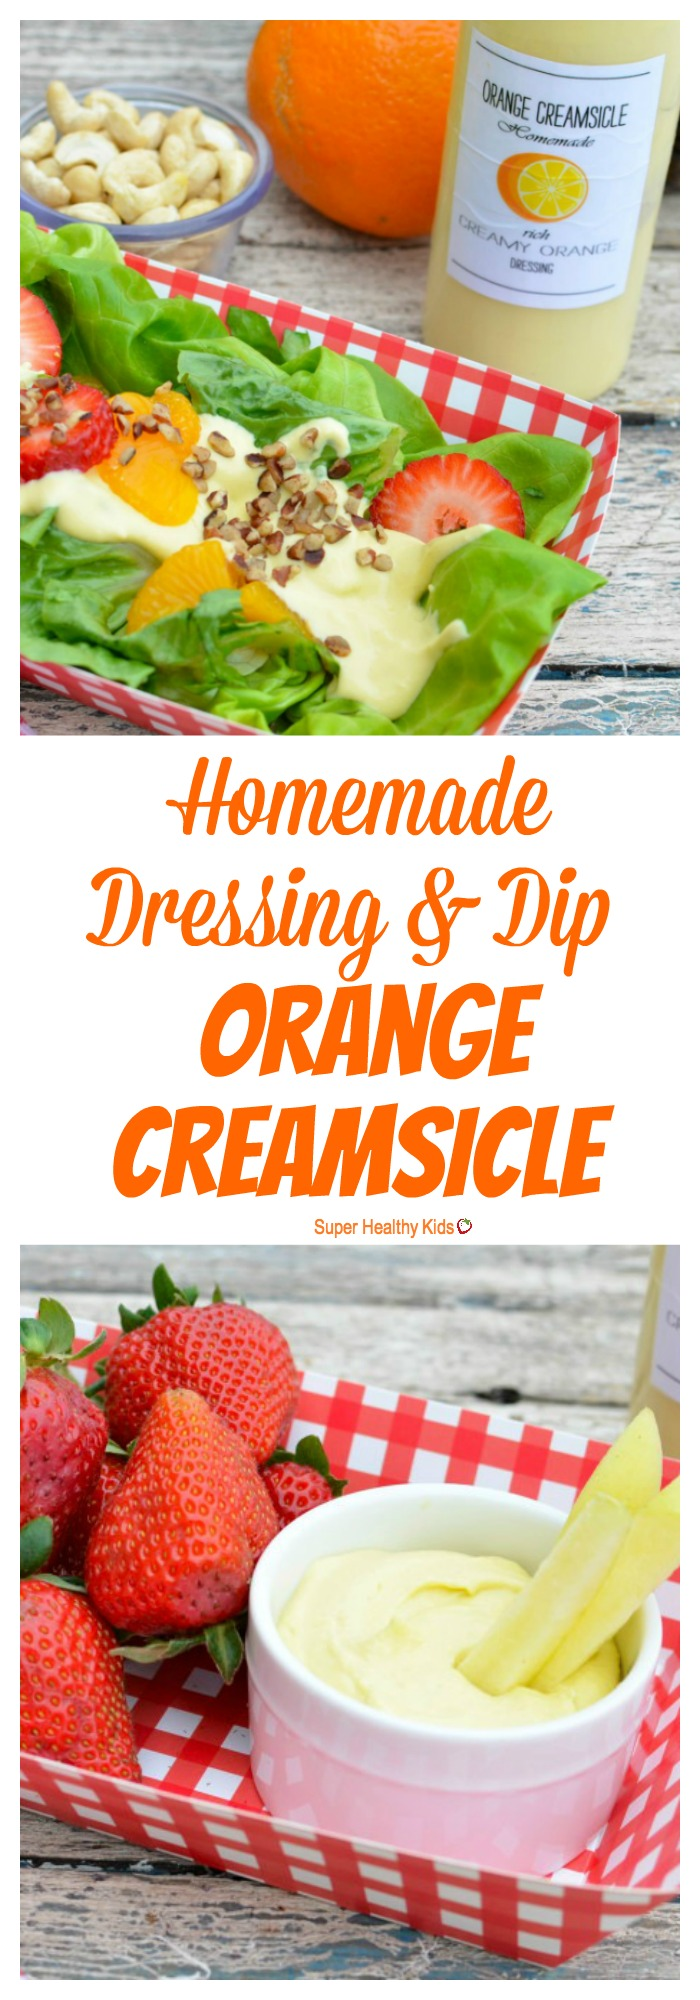 FOOD - Orange Creamsicle Homemade Dressing & Dip. The ultimate creamy dip for all your fruits AND vegetables! http://www.superhealthykids.com/orange-creamsicle-homemade-dressing-dip/